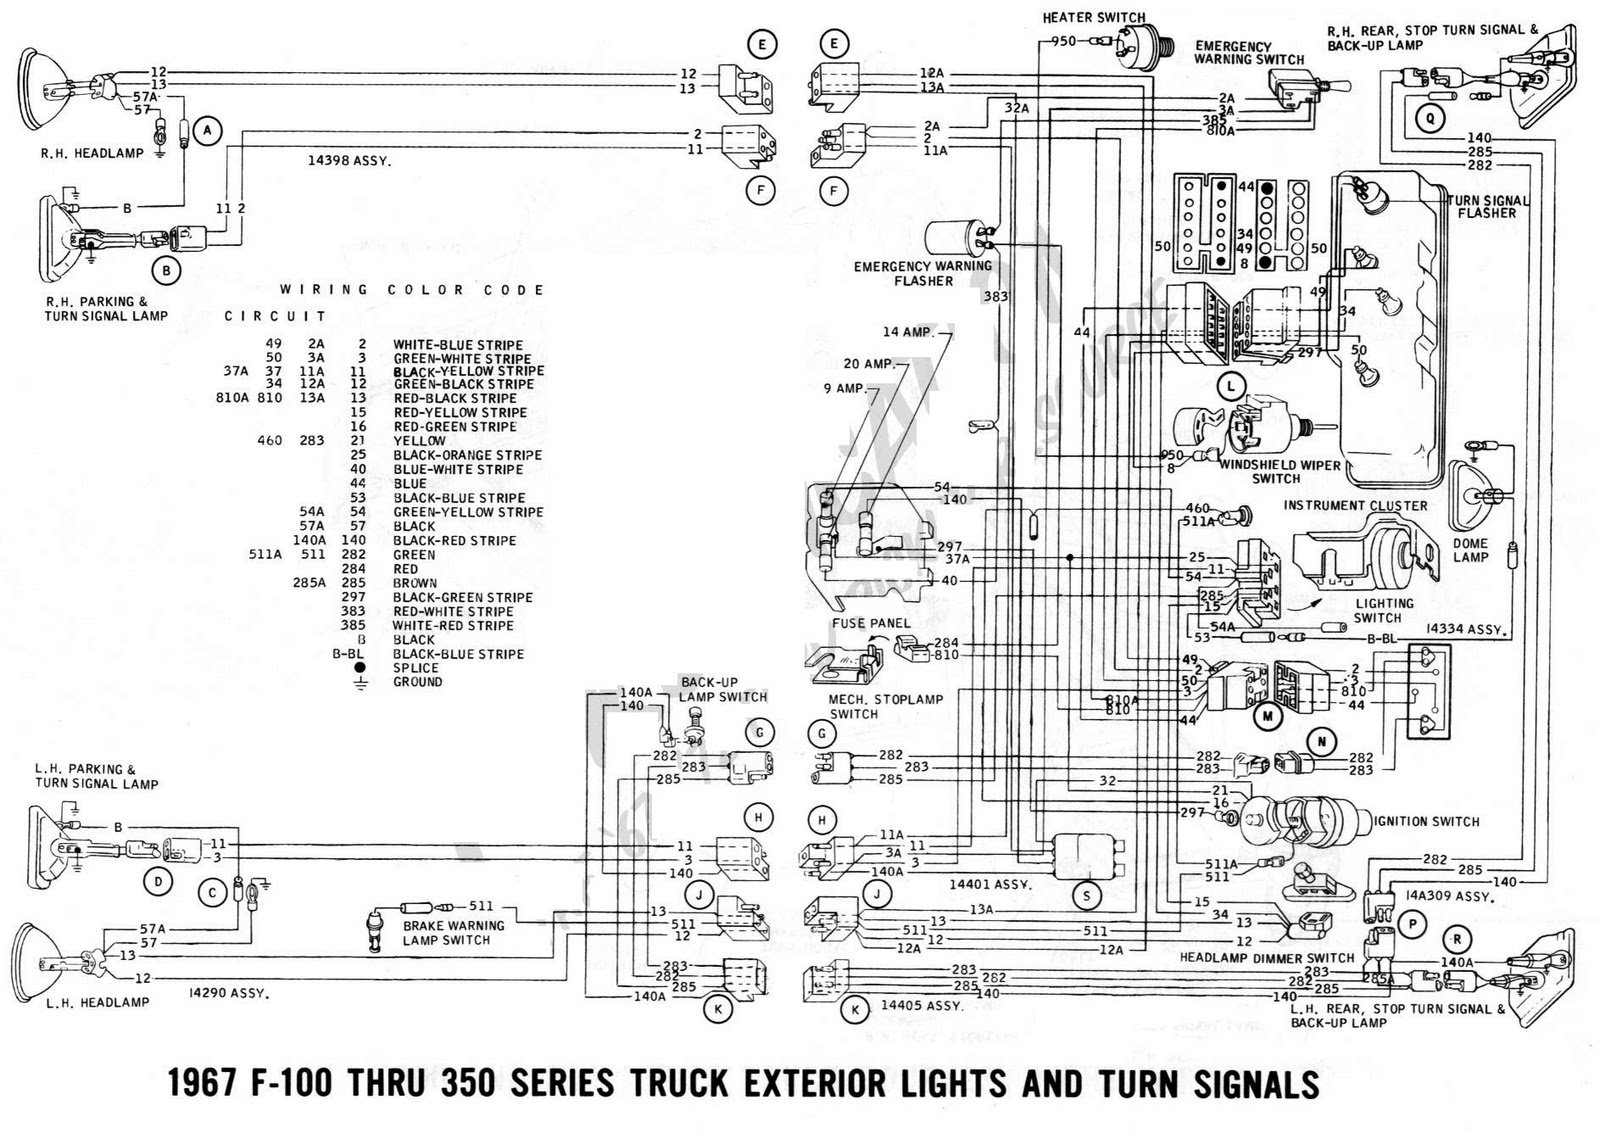 1962 Ford Galaxie 500 Wiring Diagram. Ford. AutosMoviles.Com